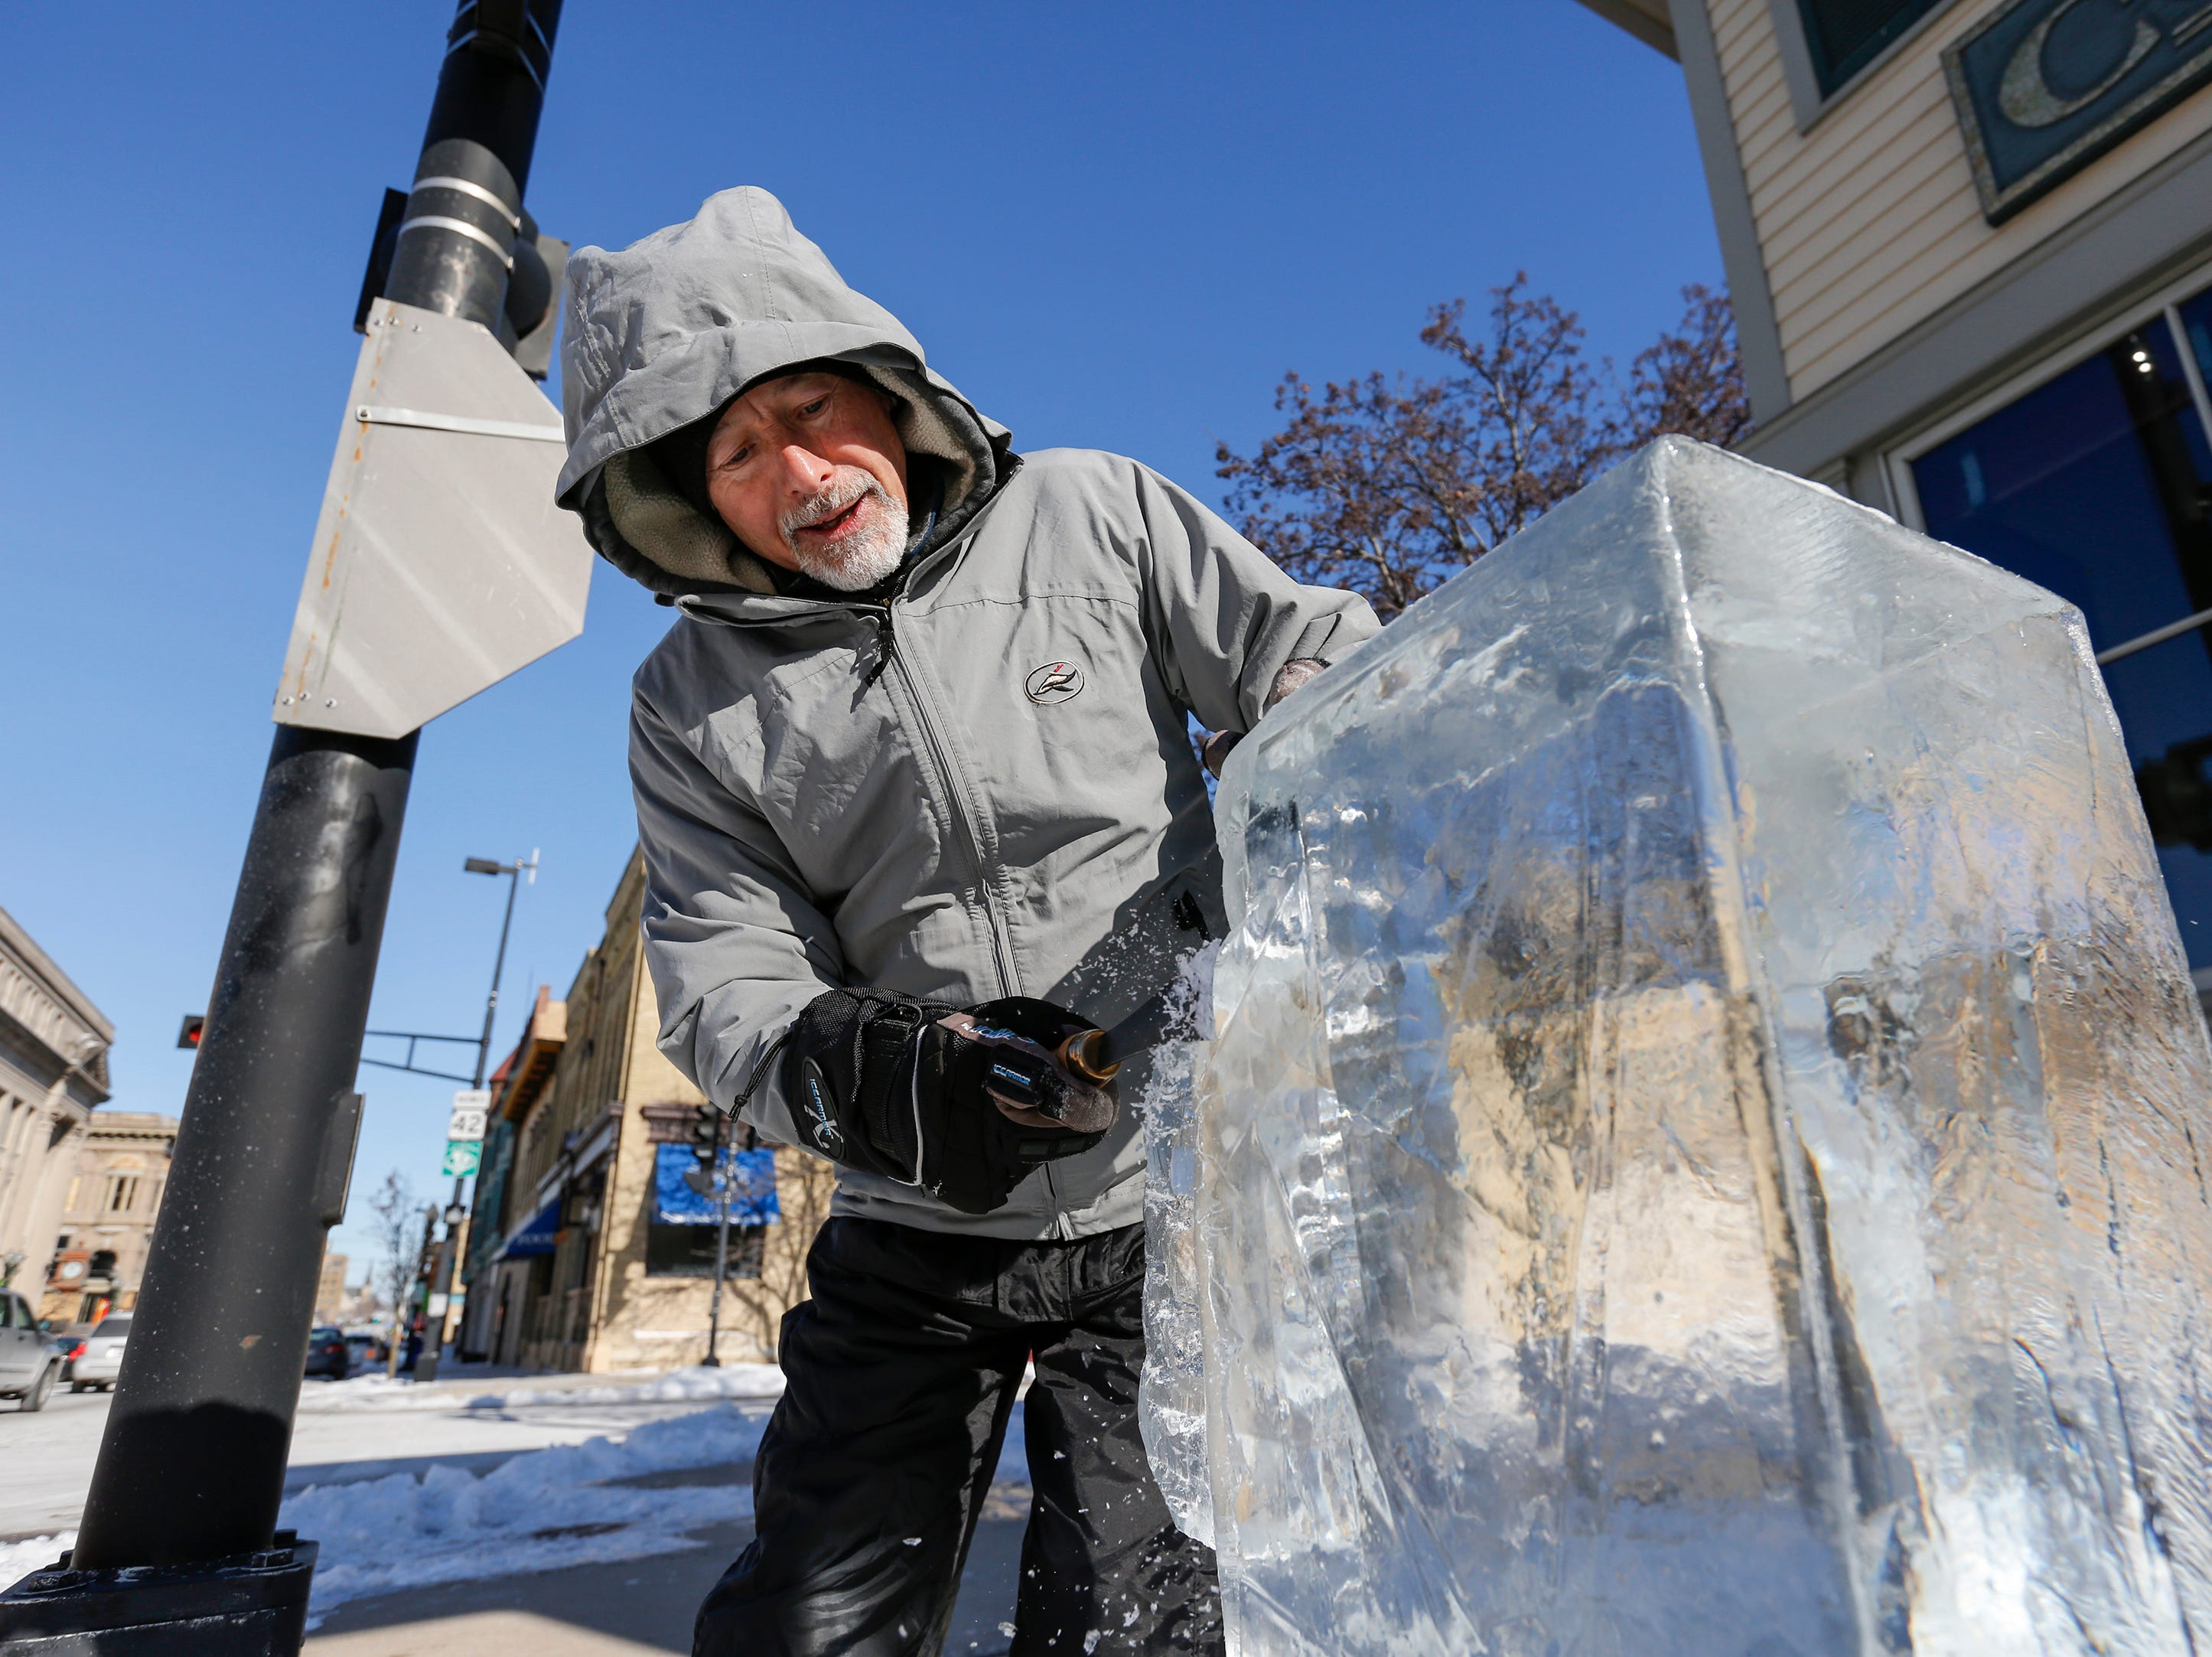 Mike LaBonte works on a sculpture in front of the Courthouse Pub during Winter Fest Saturday, February 9, 2019, in Manitowoc, Wis. Joshua Clark/USA TODAY NETWORK-Wisconsin